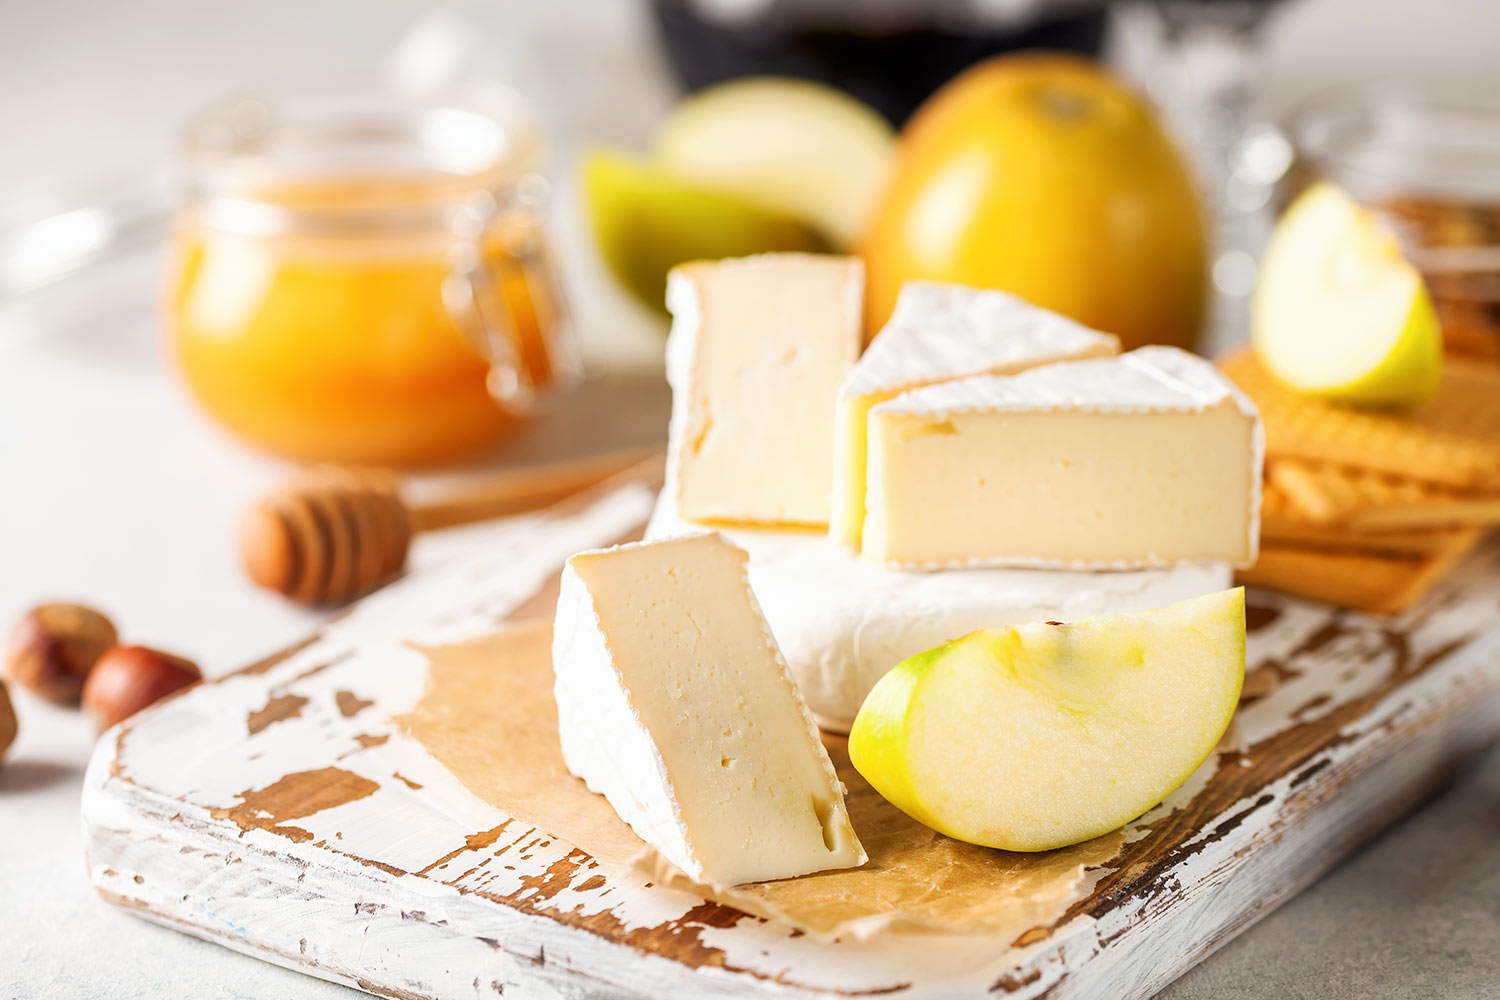 brie and apples